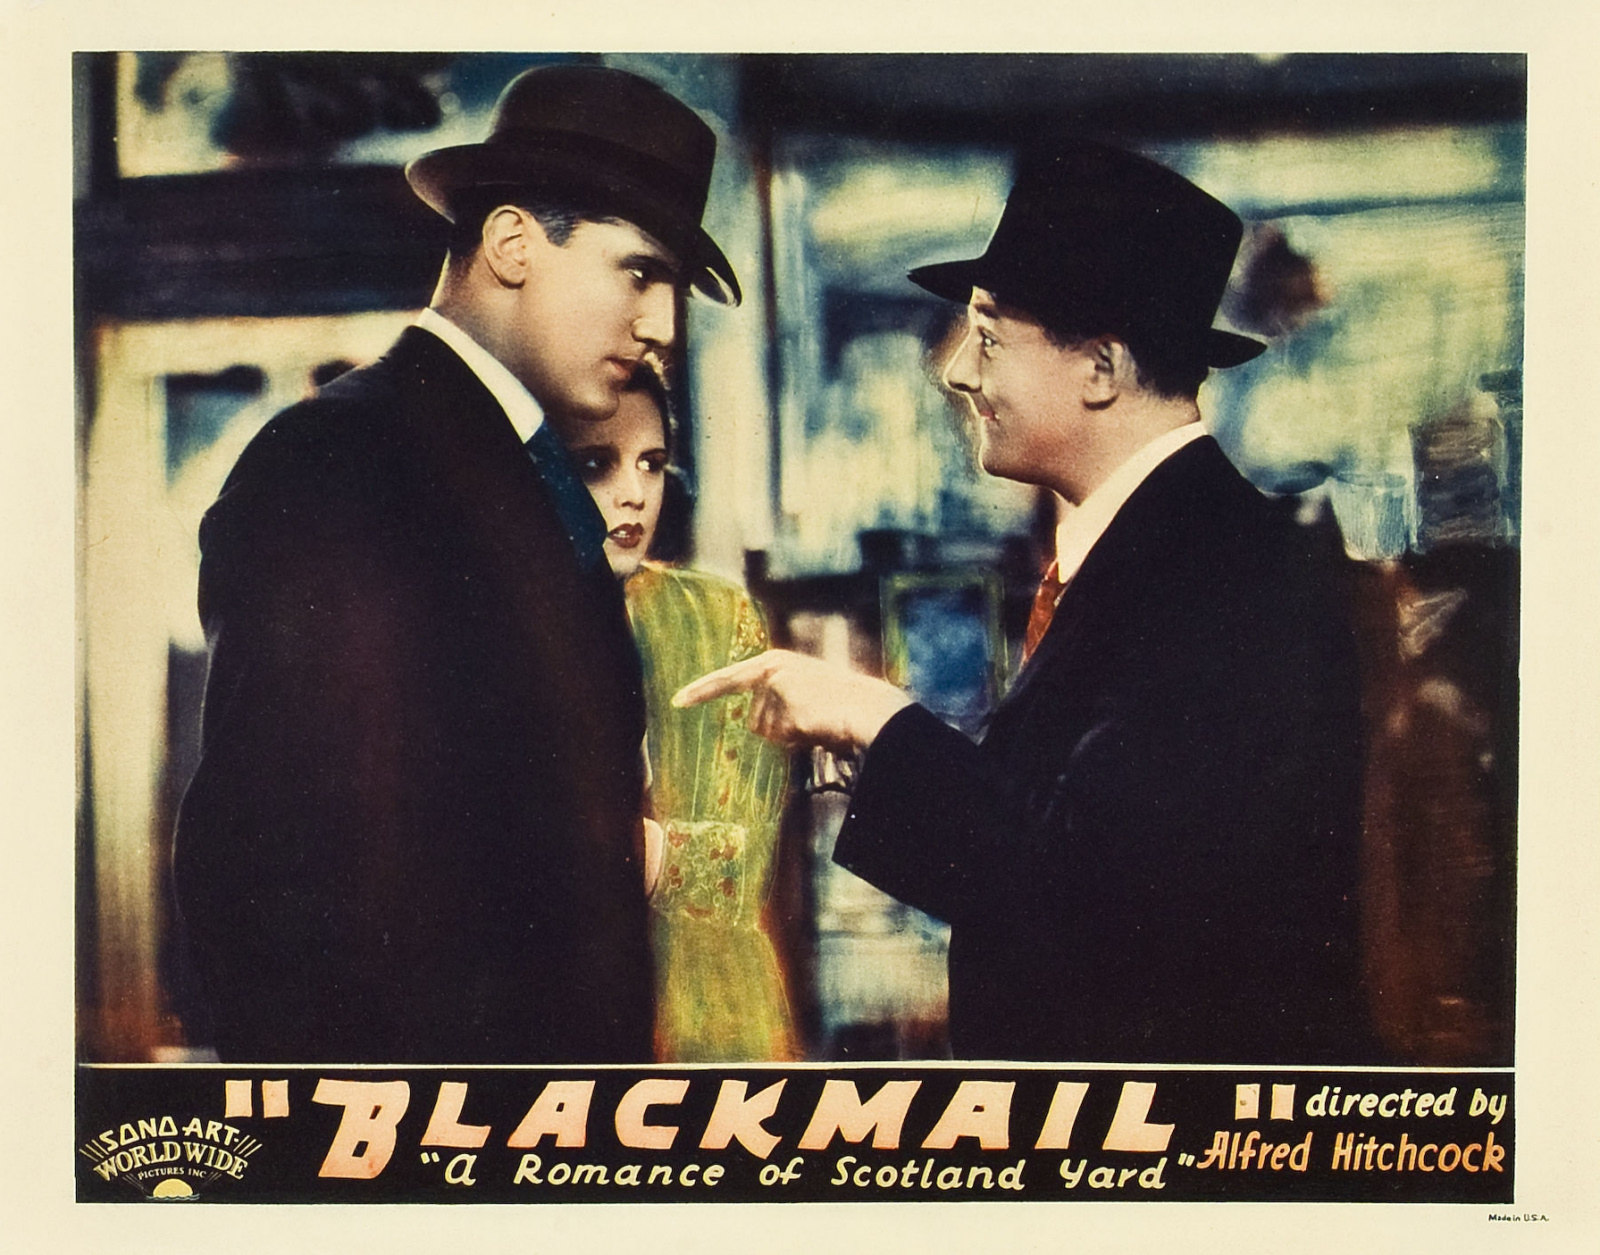 John Longden, Anny Ondra and Donald Calthrop in Blackmail (1929, dir. Alfred Hitchcock) US lobby card